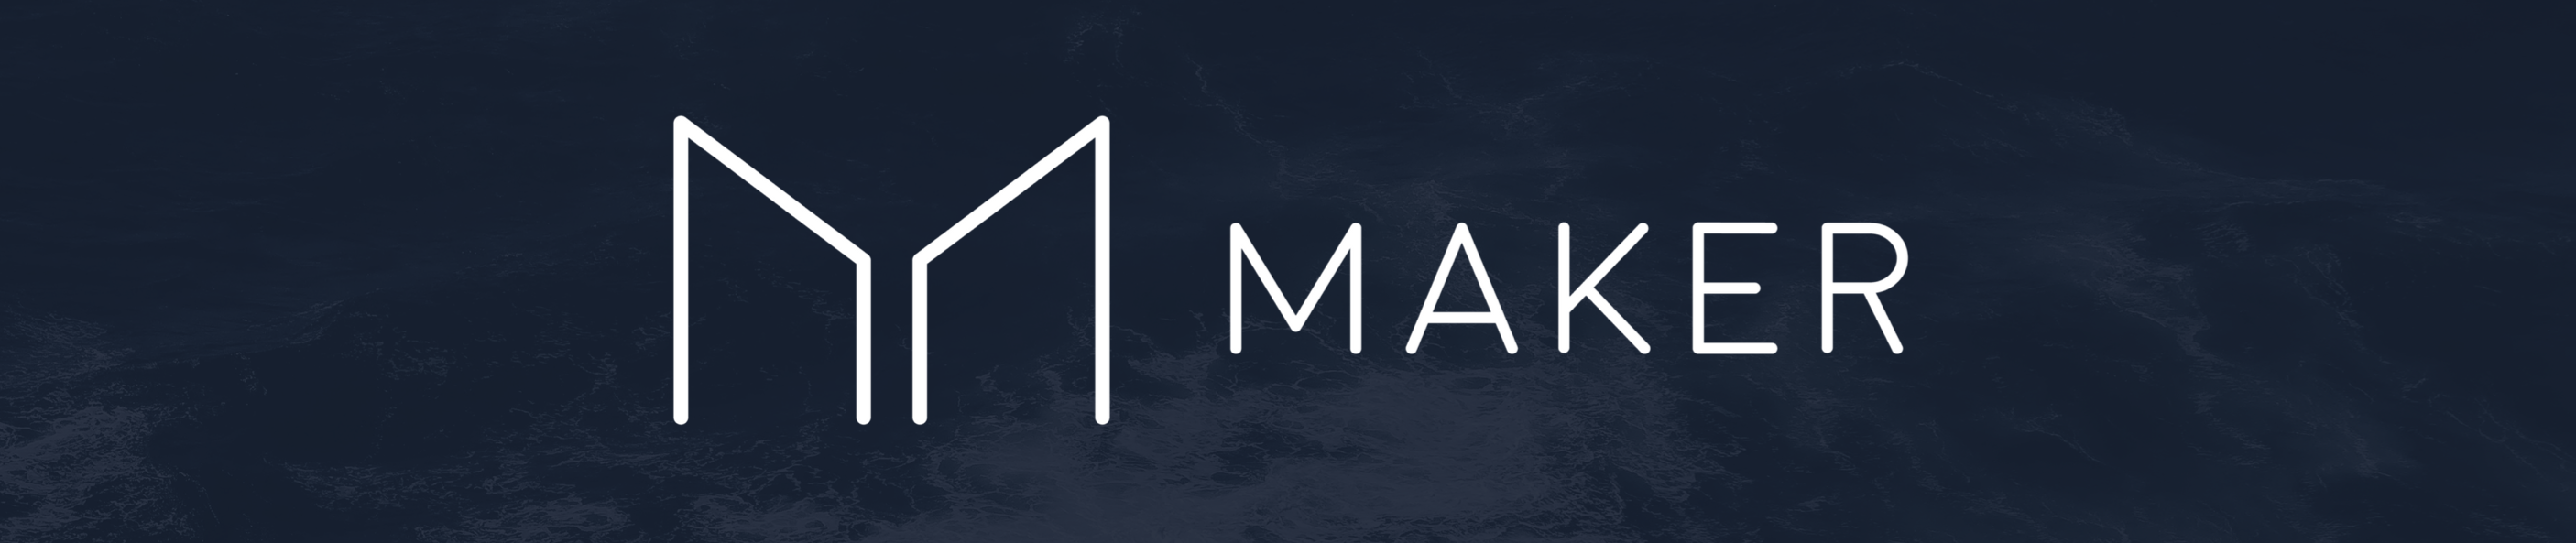 Maker is comprised of a decentralized stablecoin, collateral loans, and community governance.